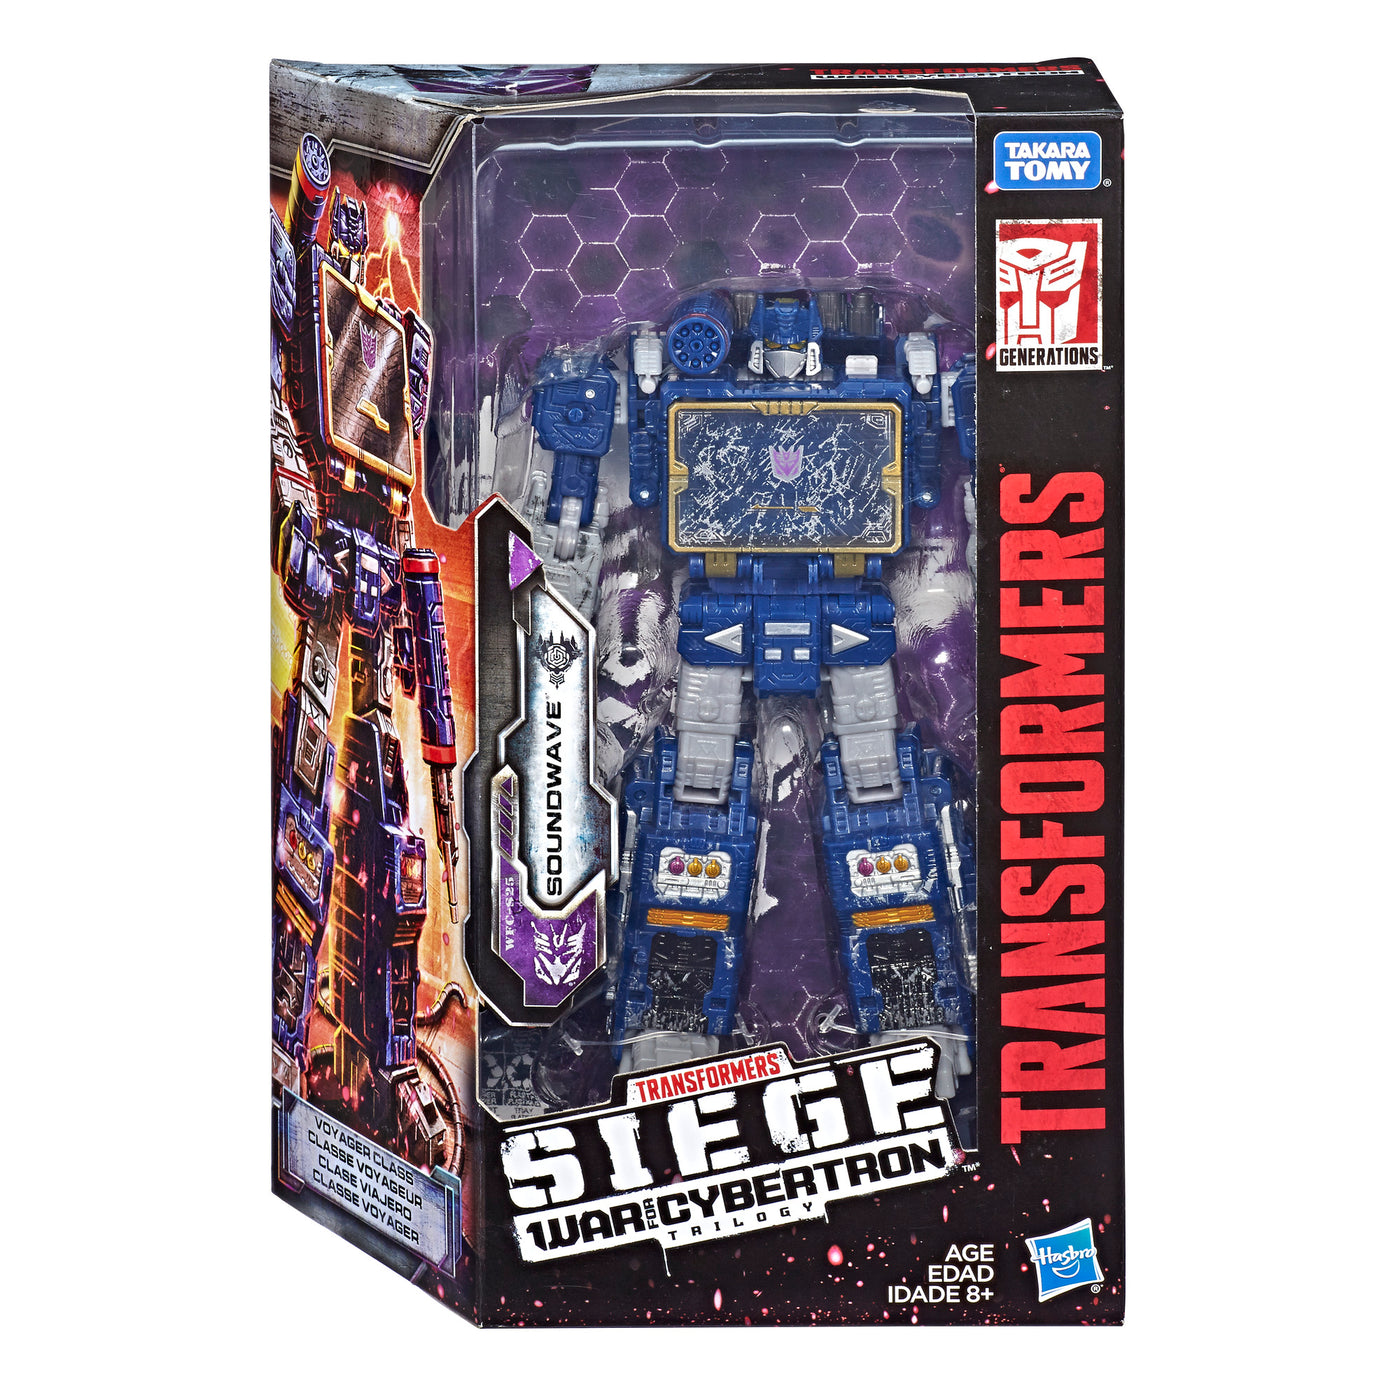 Transformers Generations SOUNDWAVE Fall Of Cybertron Decepticon Robot Toy